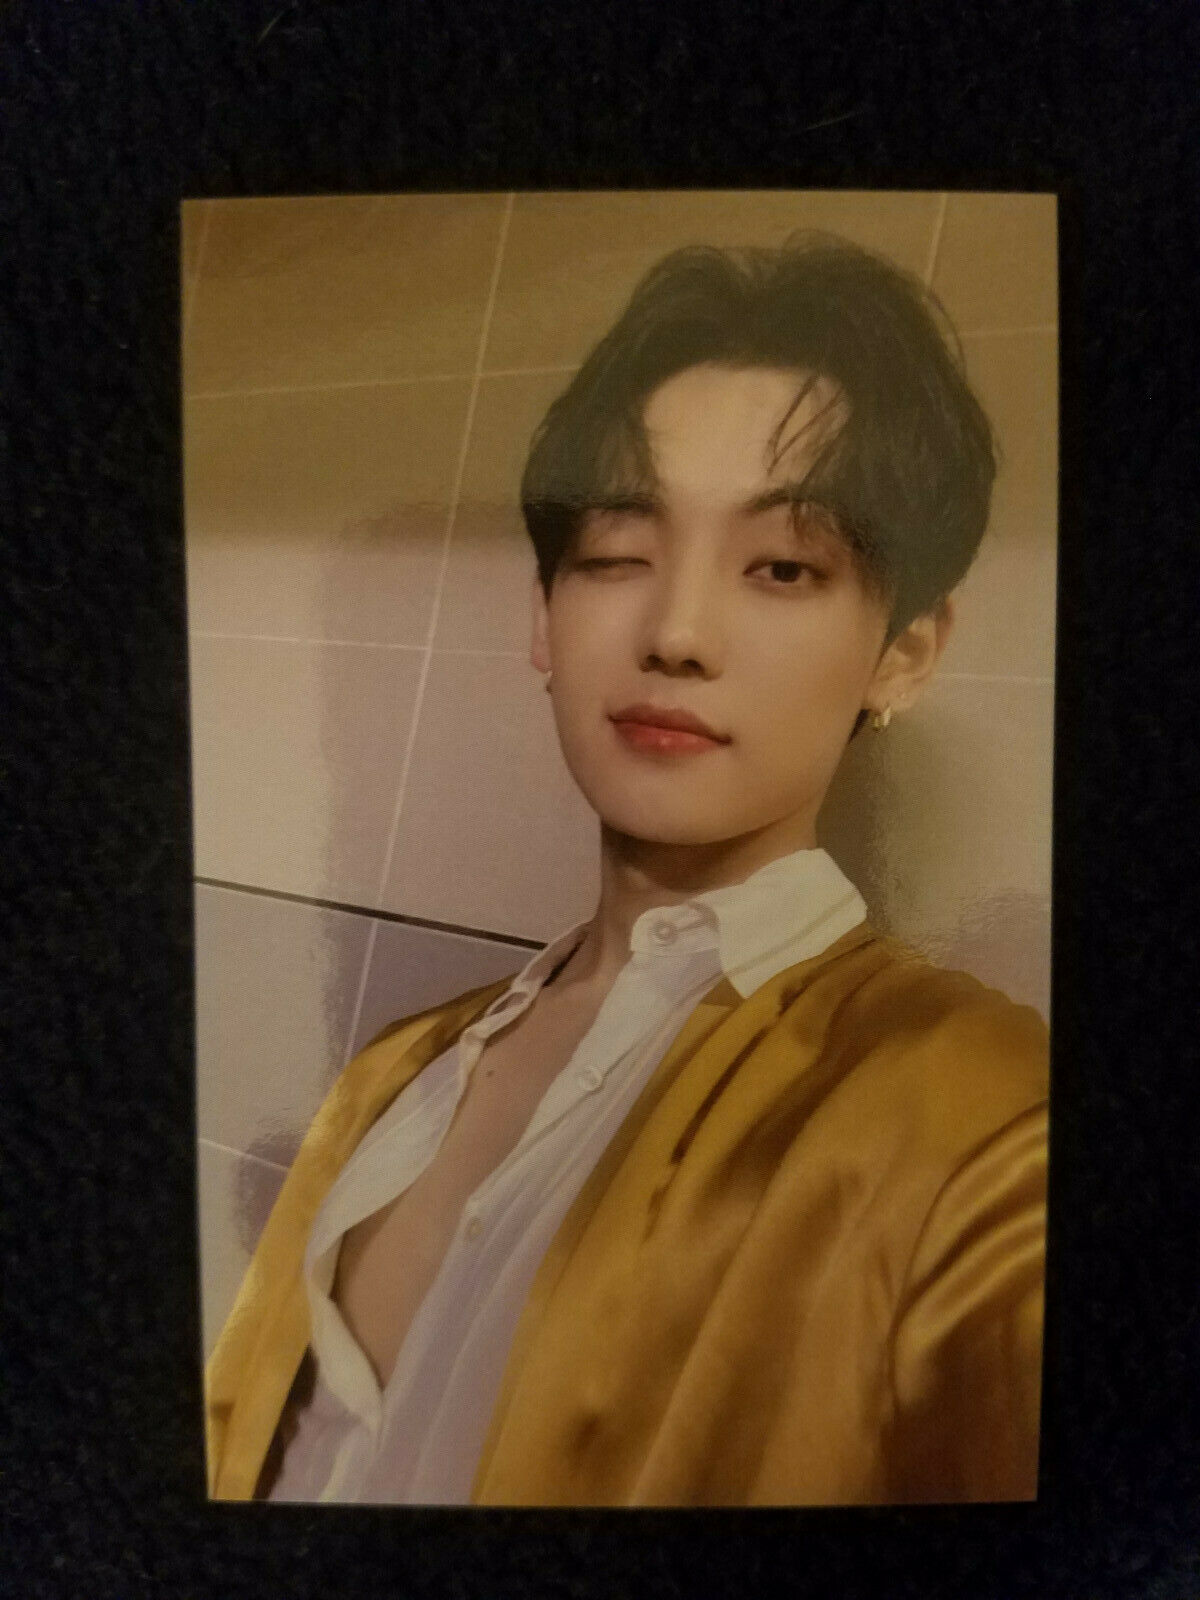 A.C.E HJZM The Butterfly Phantasy Chan Official Photocard - $12.00